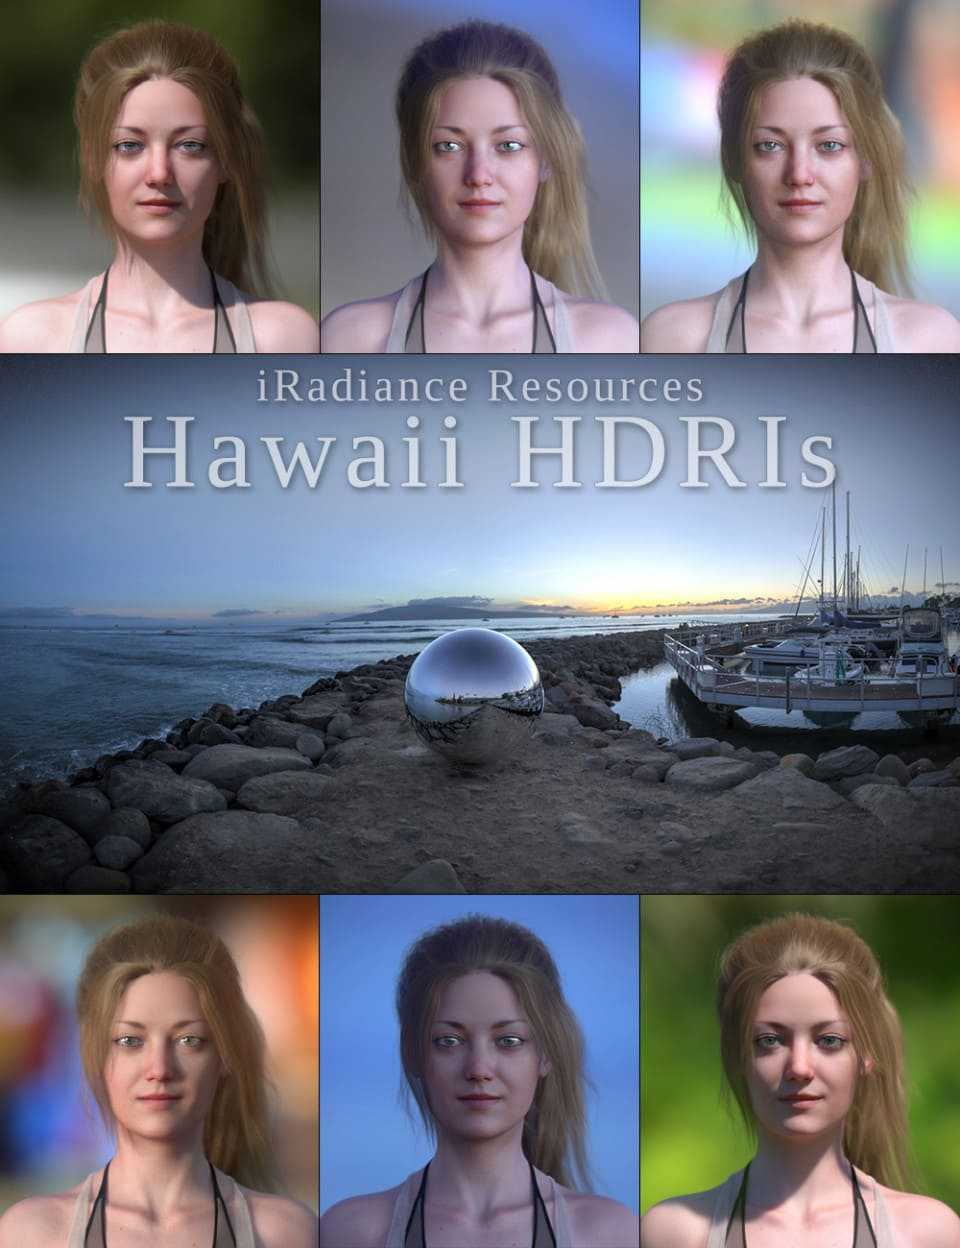 iRadiance HDR Resources – Hawaii